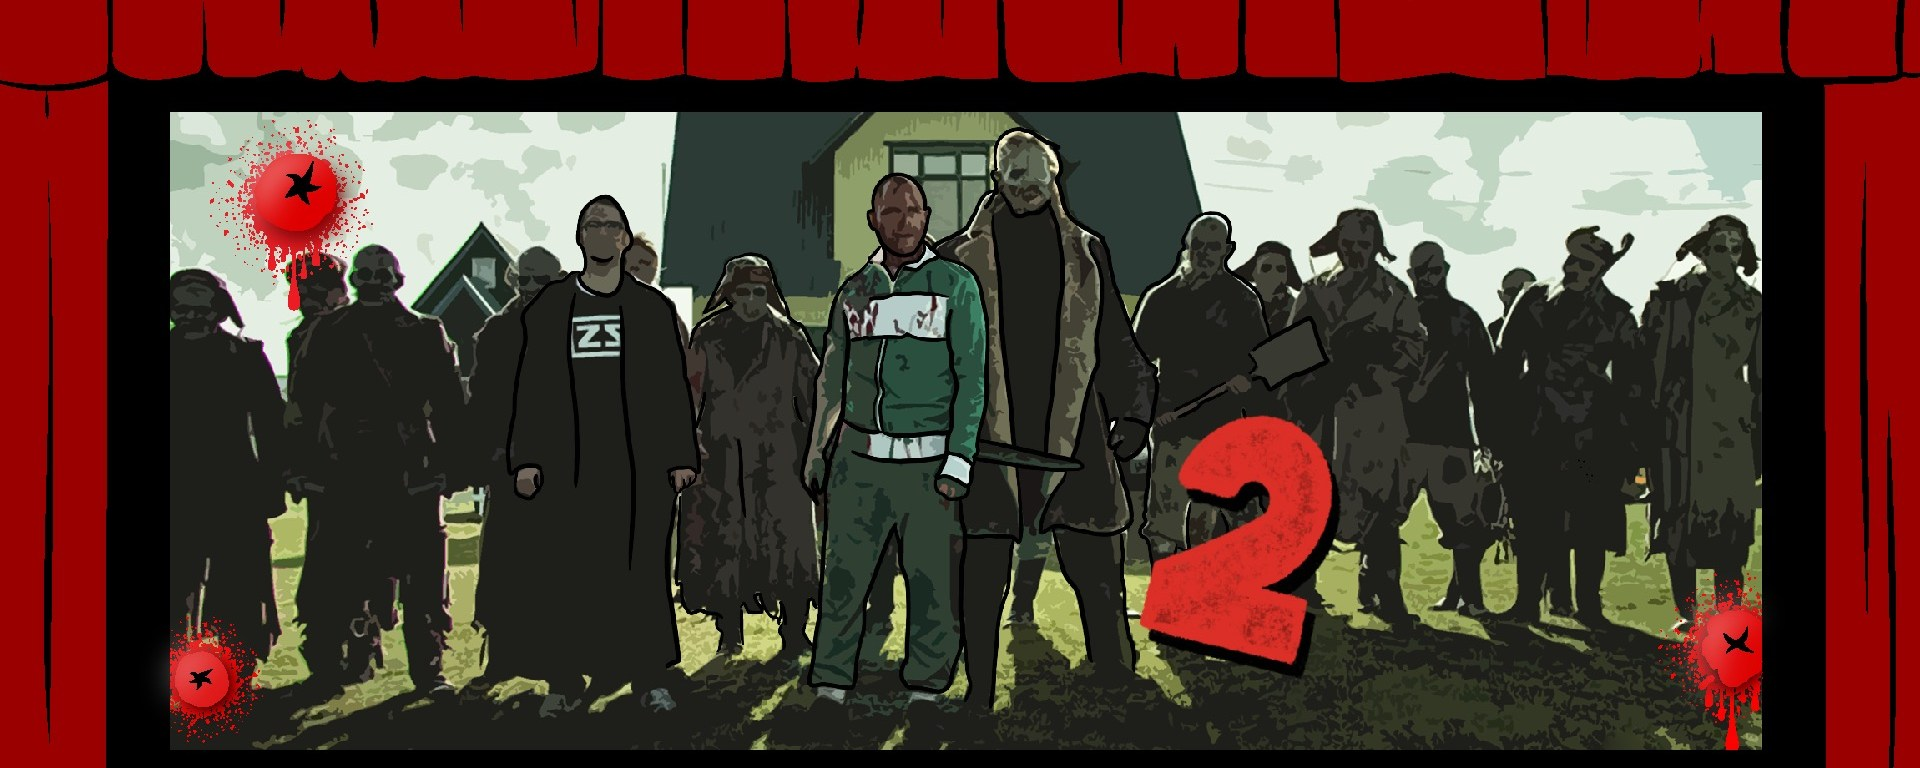 movie theatre graphic with scene from dead snow 2